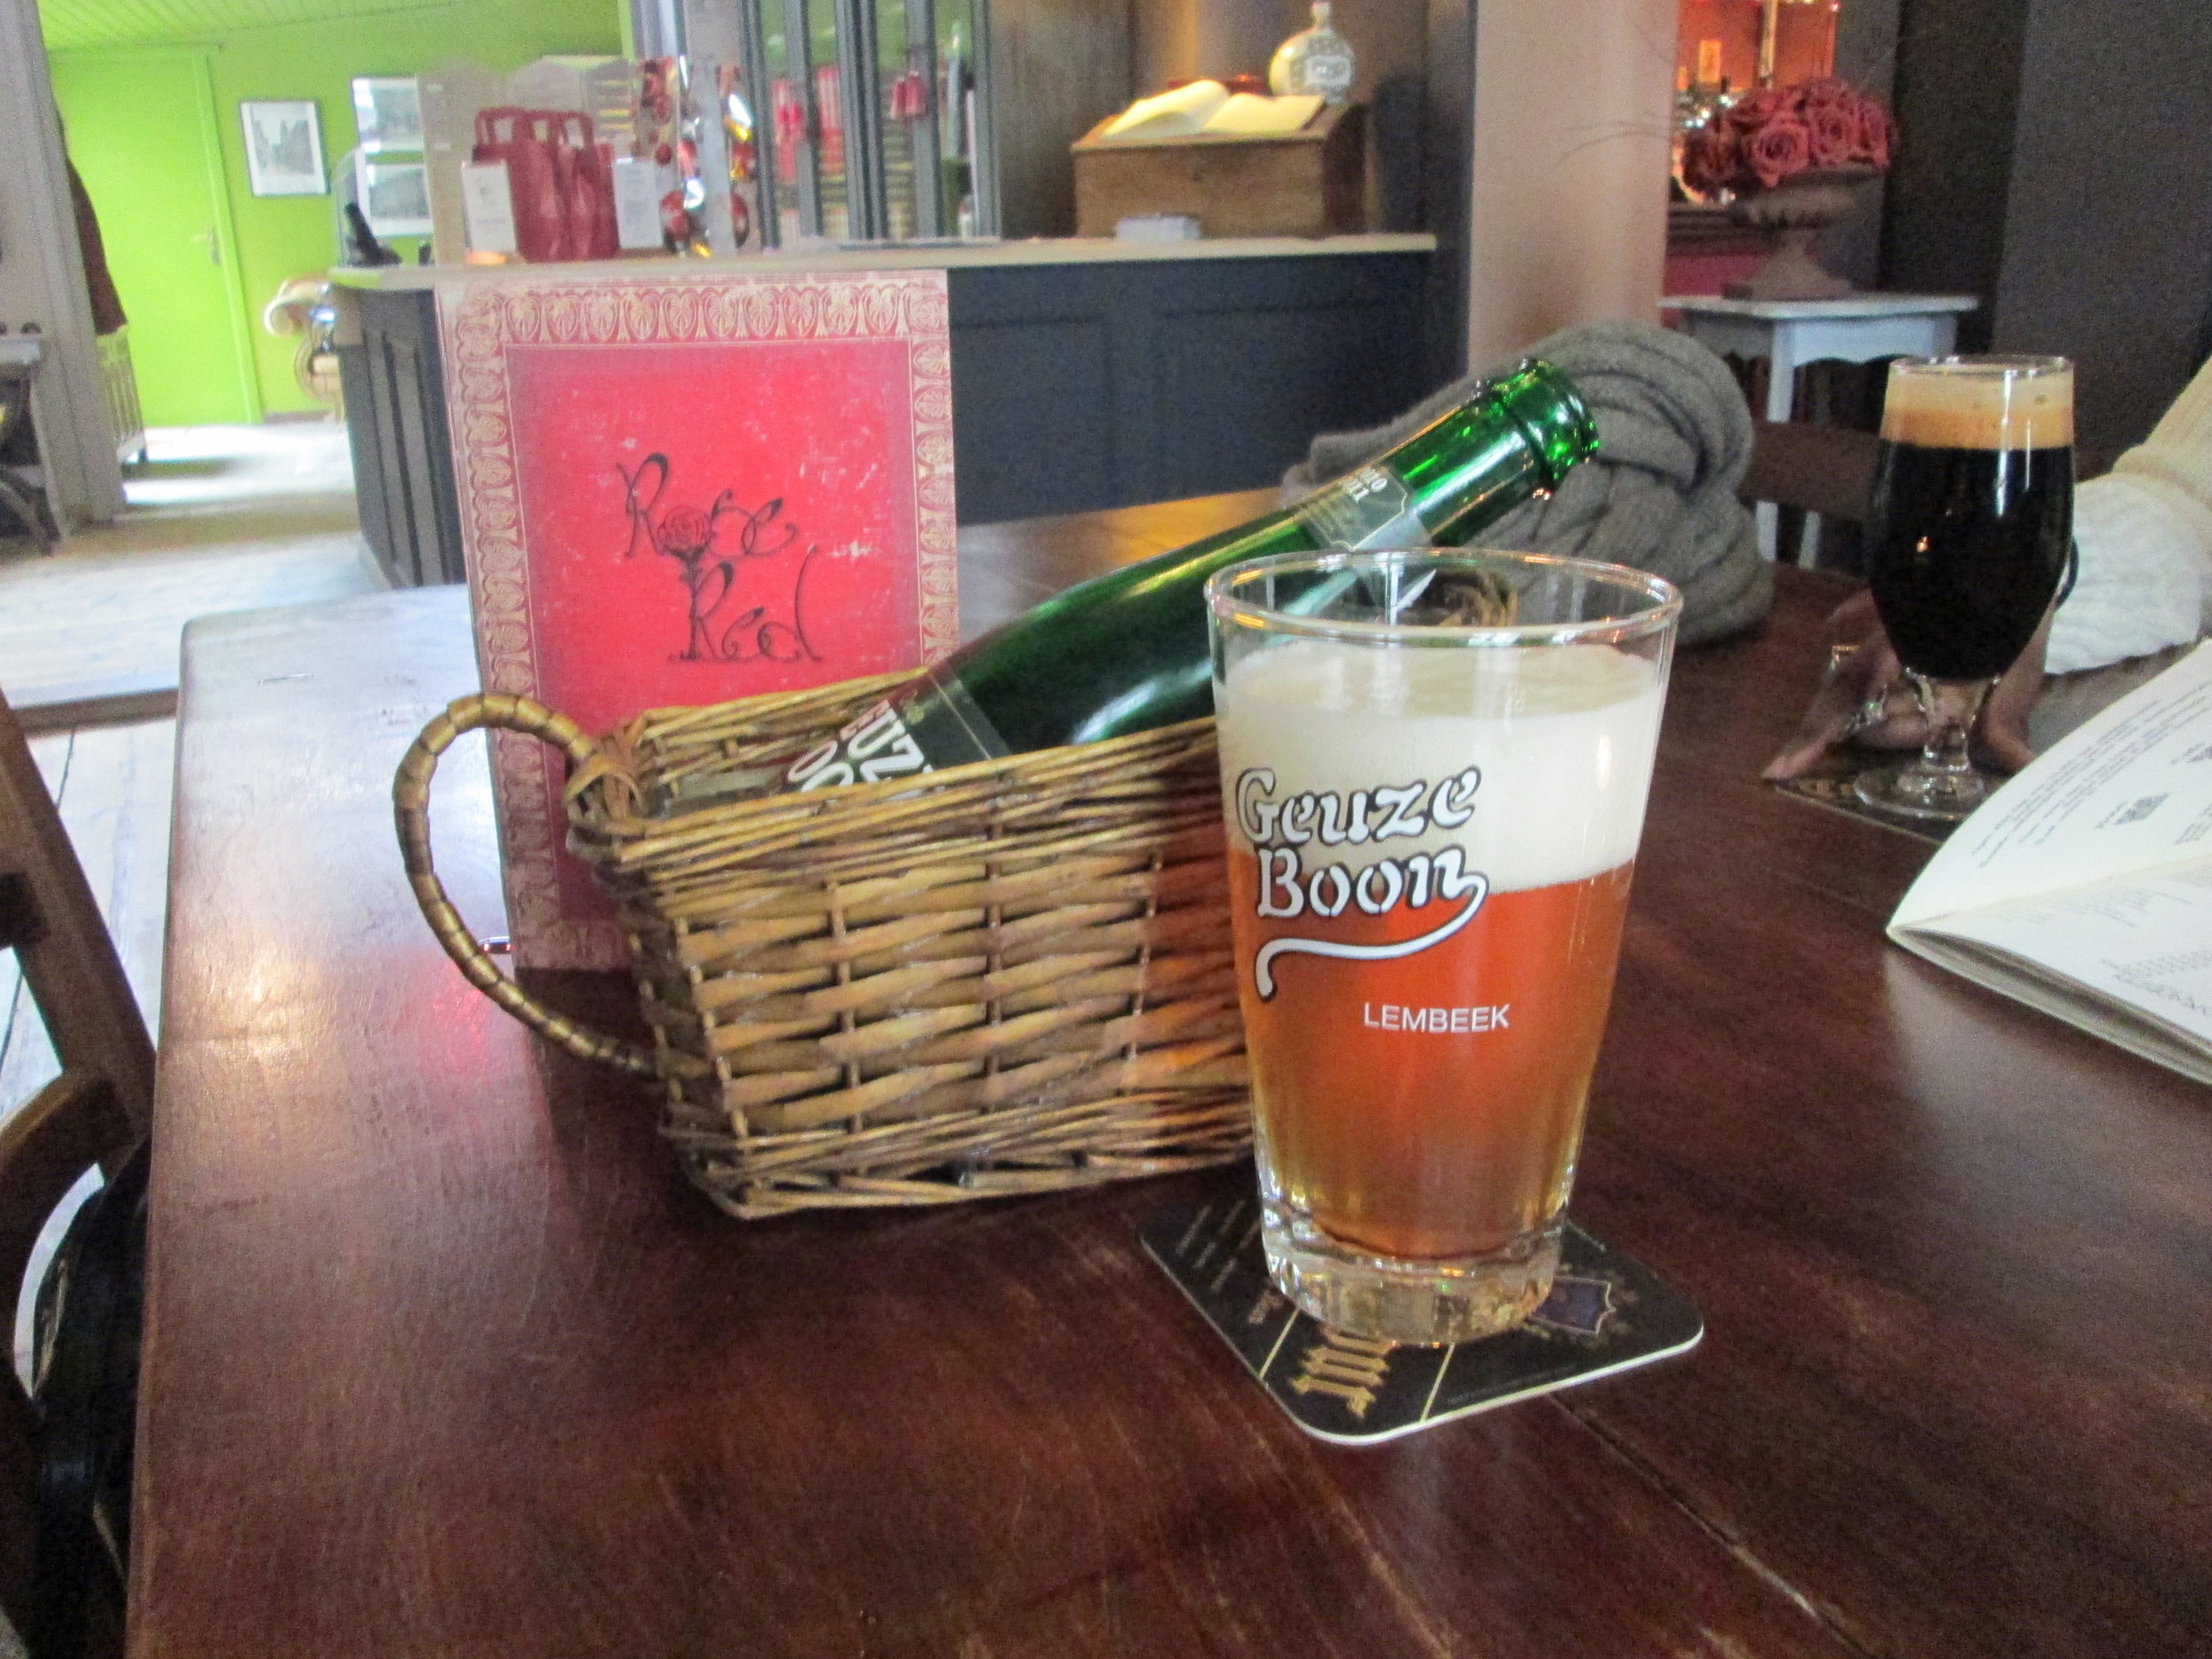 Gueuze beer, which is only produced in Belgium, due to the special fermentation process.